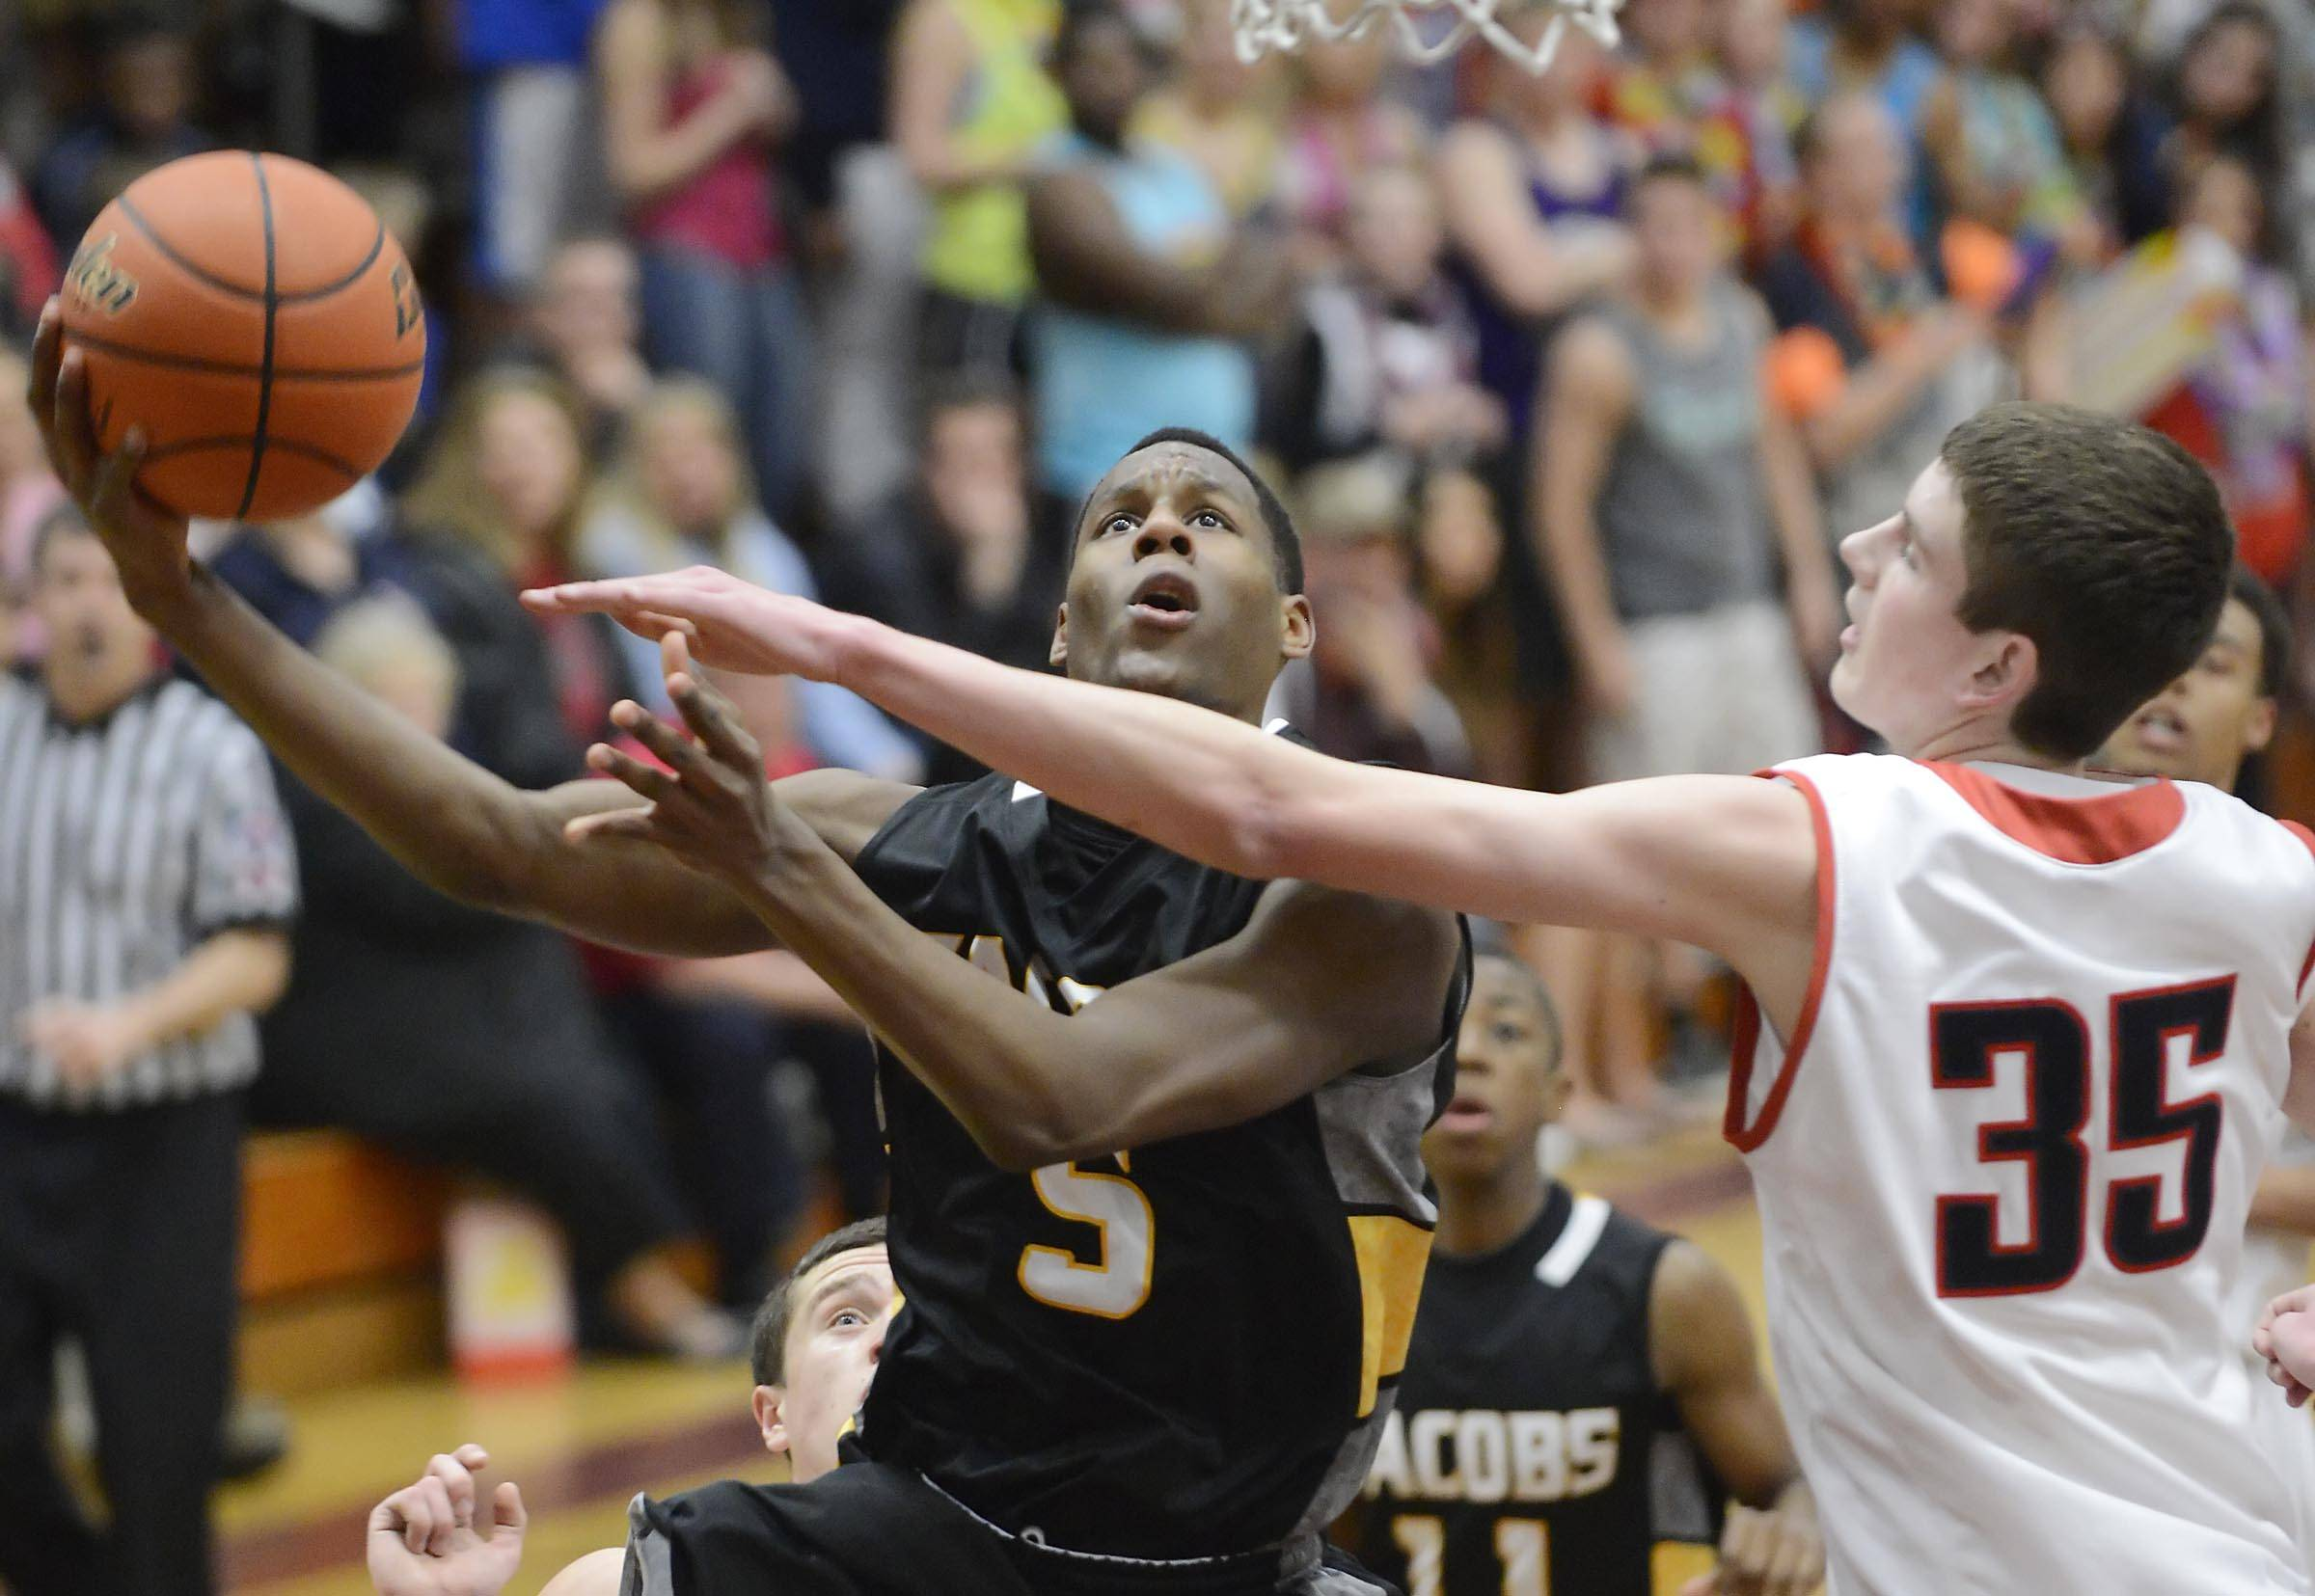 South Elgin's Tyler Hankins tries to block the shot of Jacobs' Chrishawn Orange Wednesday in the Class 4A Elgin sectional semifinal.